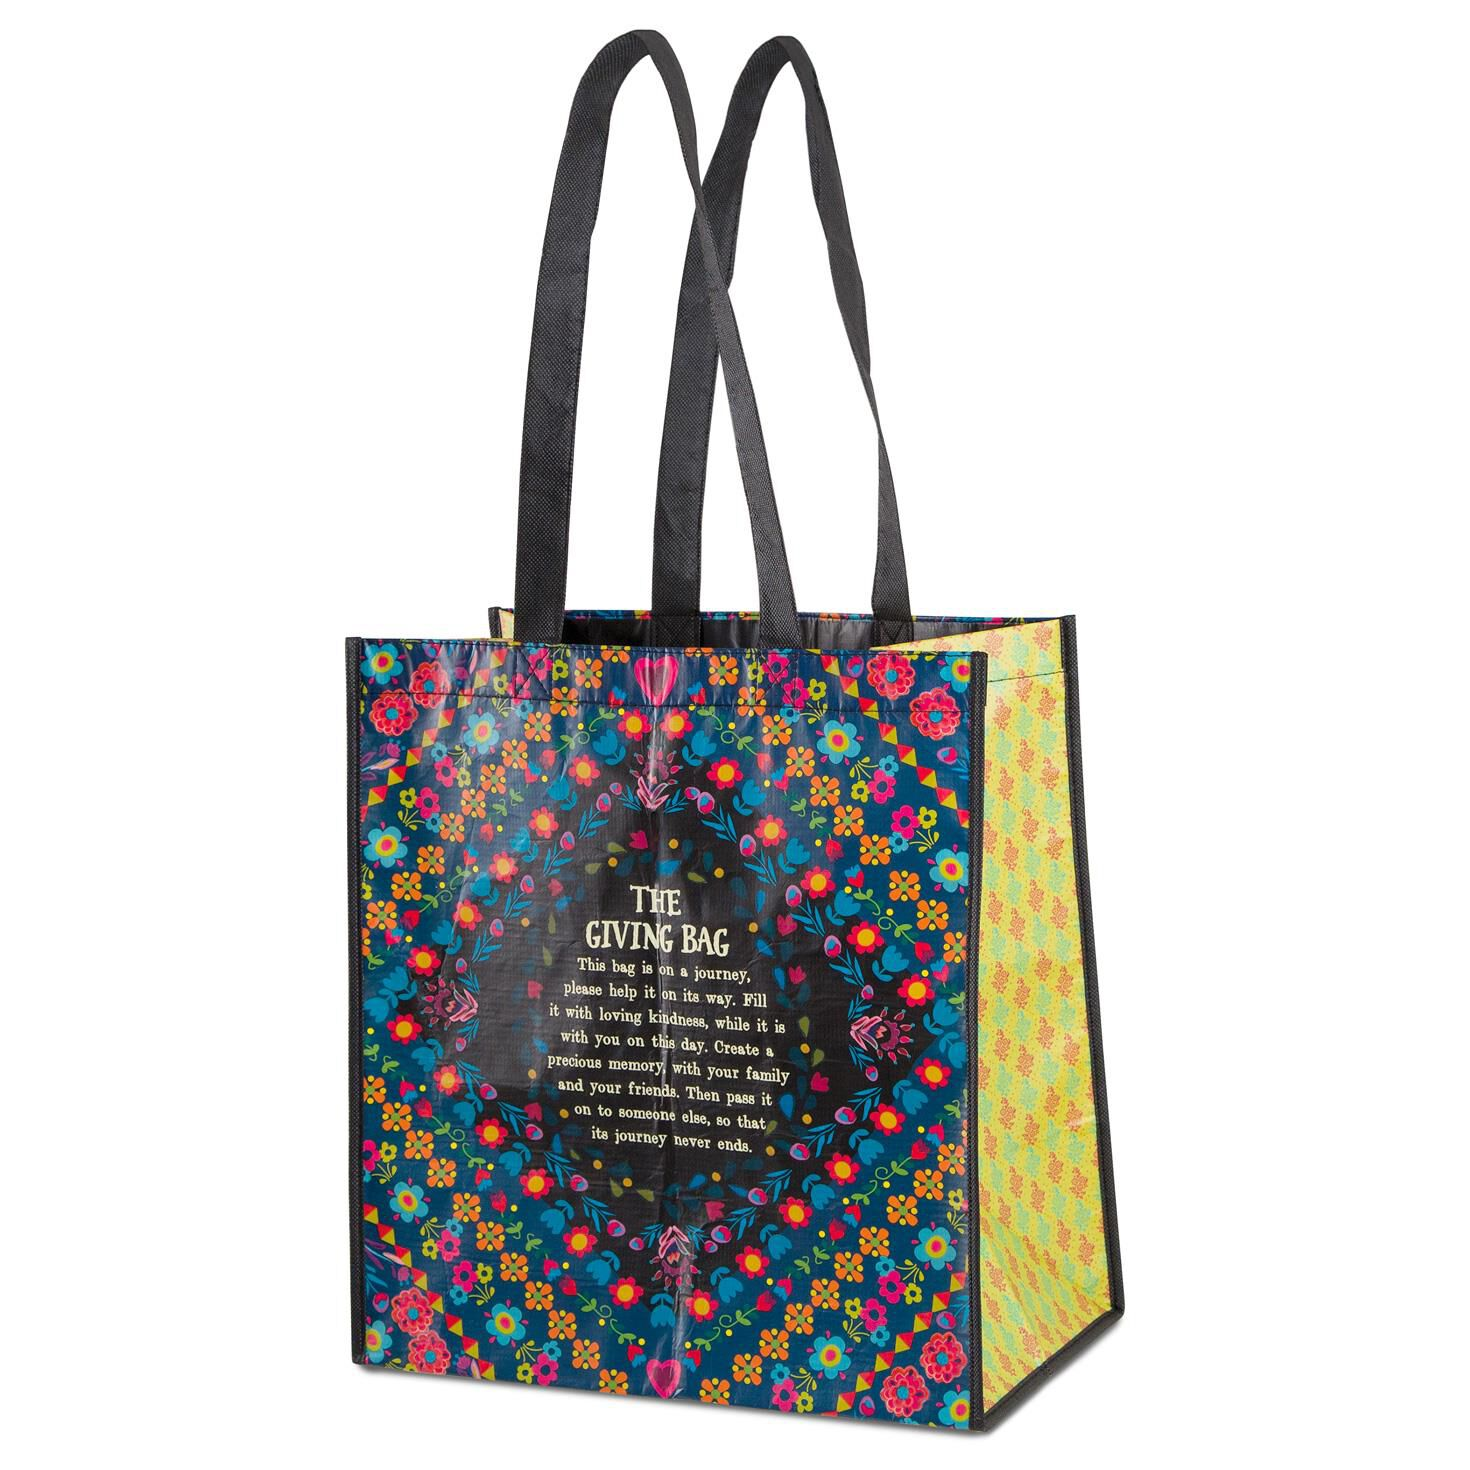 VIDA Tote Bag - Memories 4 by VIDA 9tHxjtgOQq